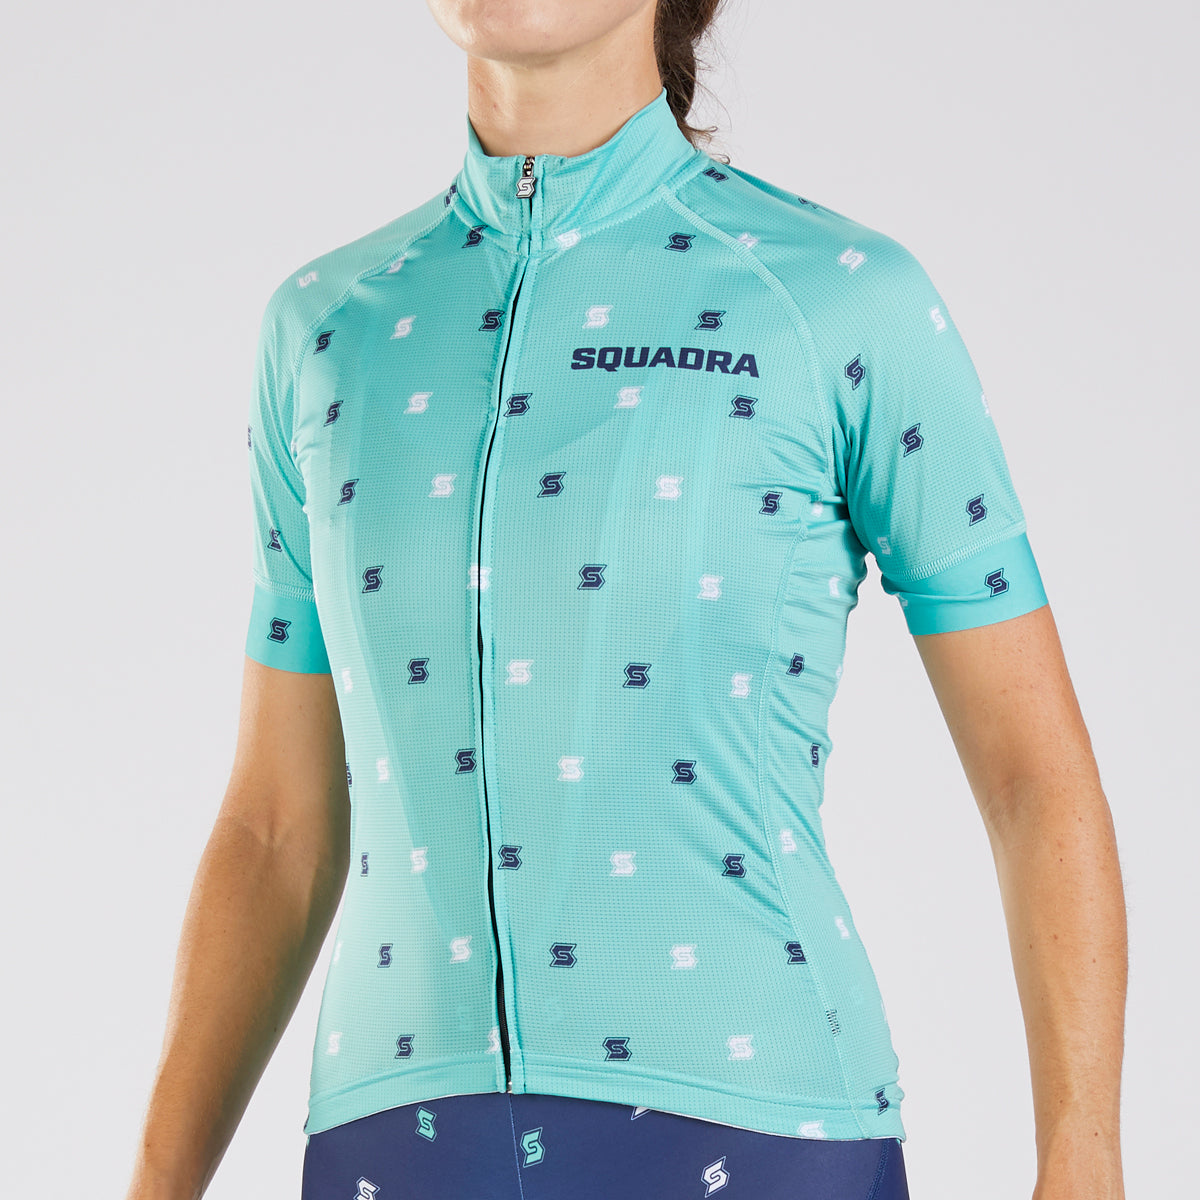 WOMENS PRO ISSUE S/S JERSEY - EMBLEMA